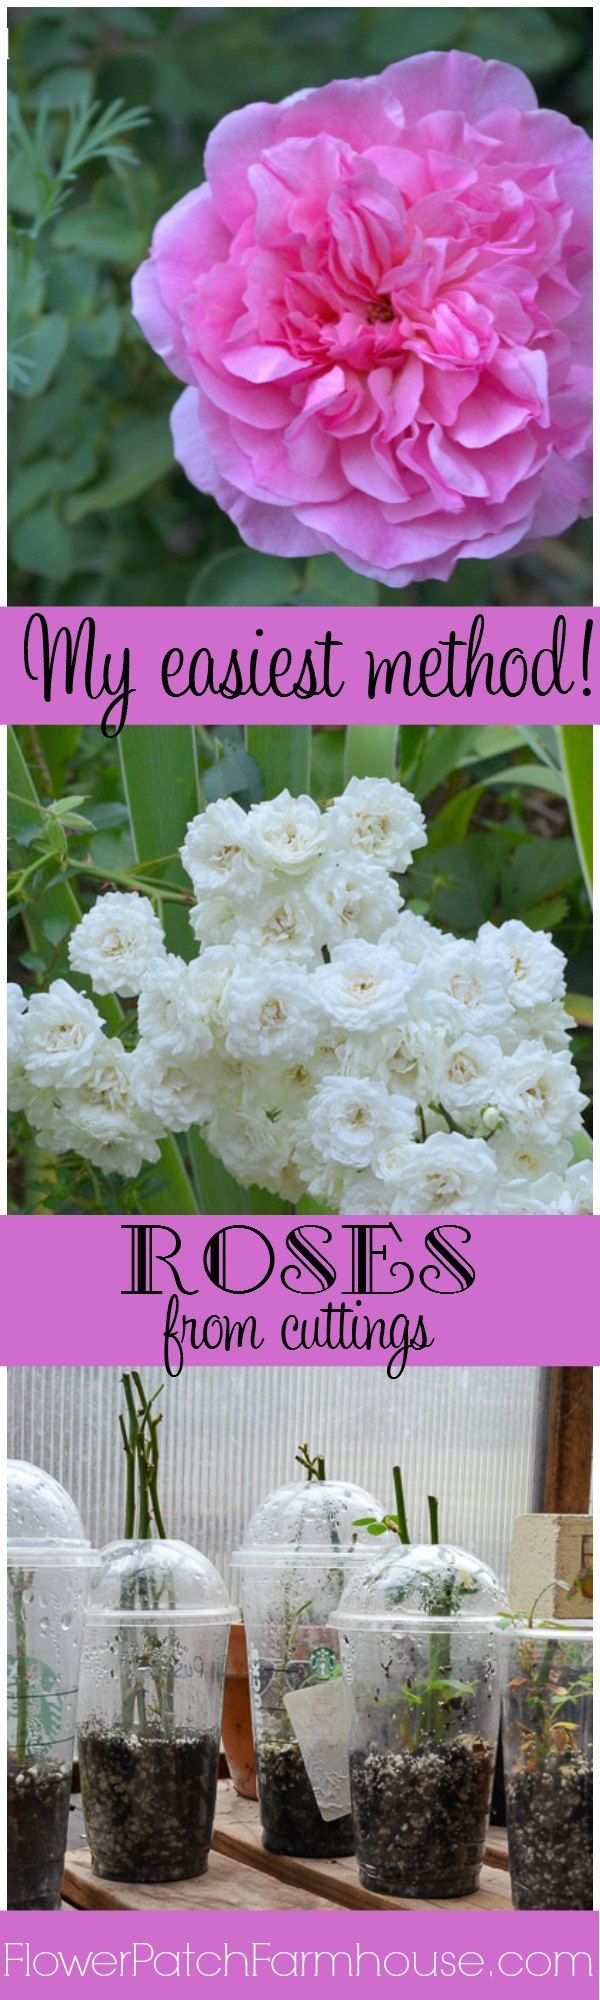 Super simple method to root roses! No fancy equipment and great for a kids project. I have had great success with this method, I LOVE it. FlowerPatchFarmhouse.com